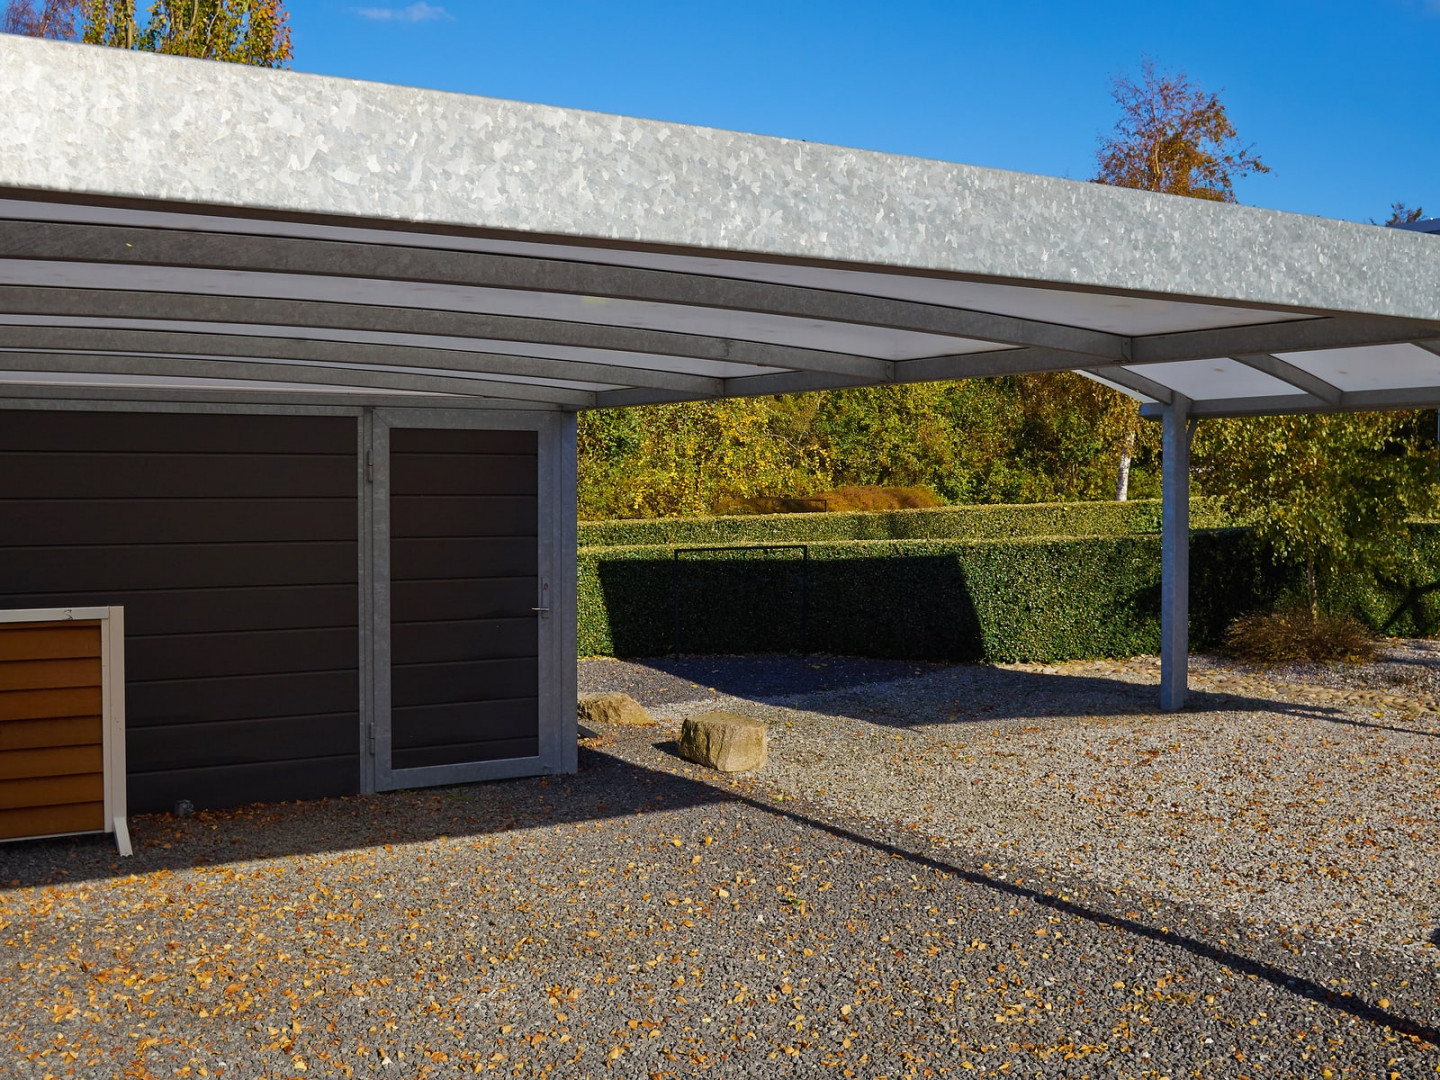 Expect quality service from All Metal Carports